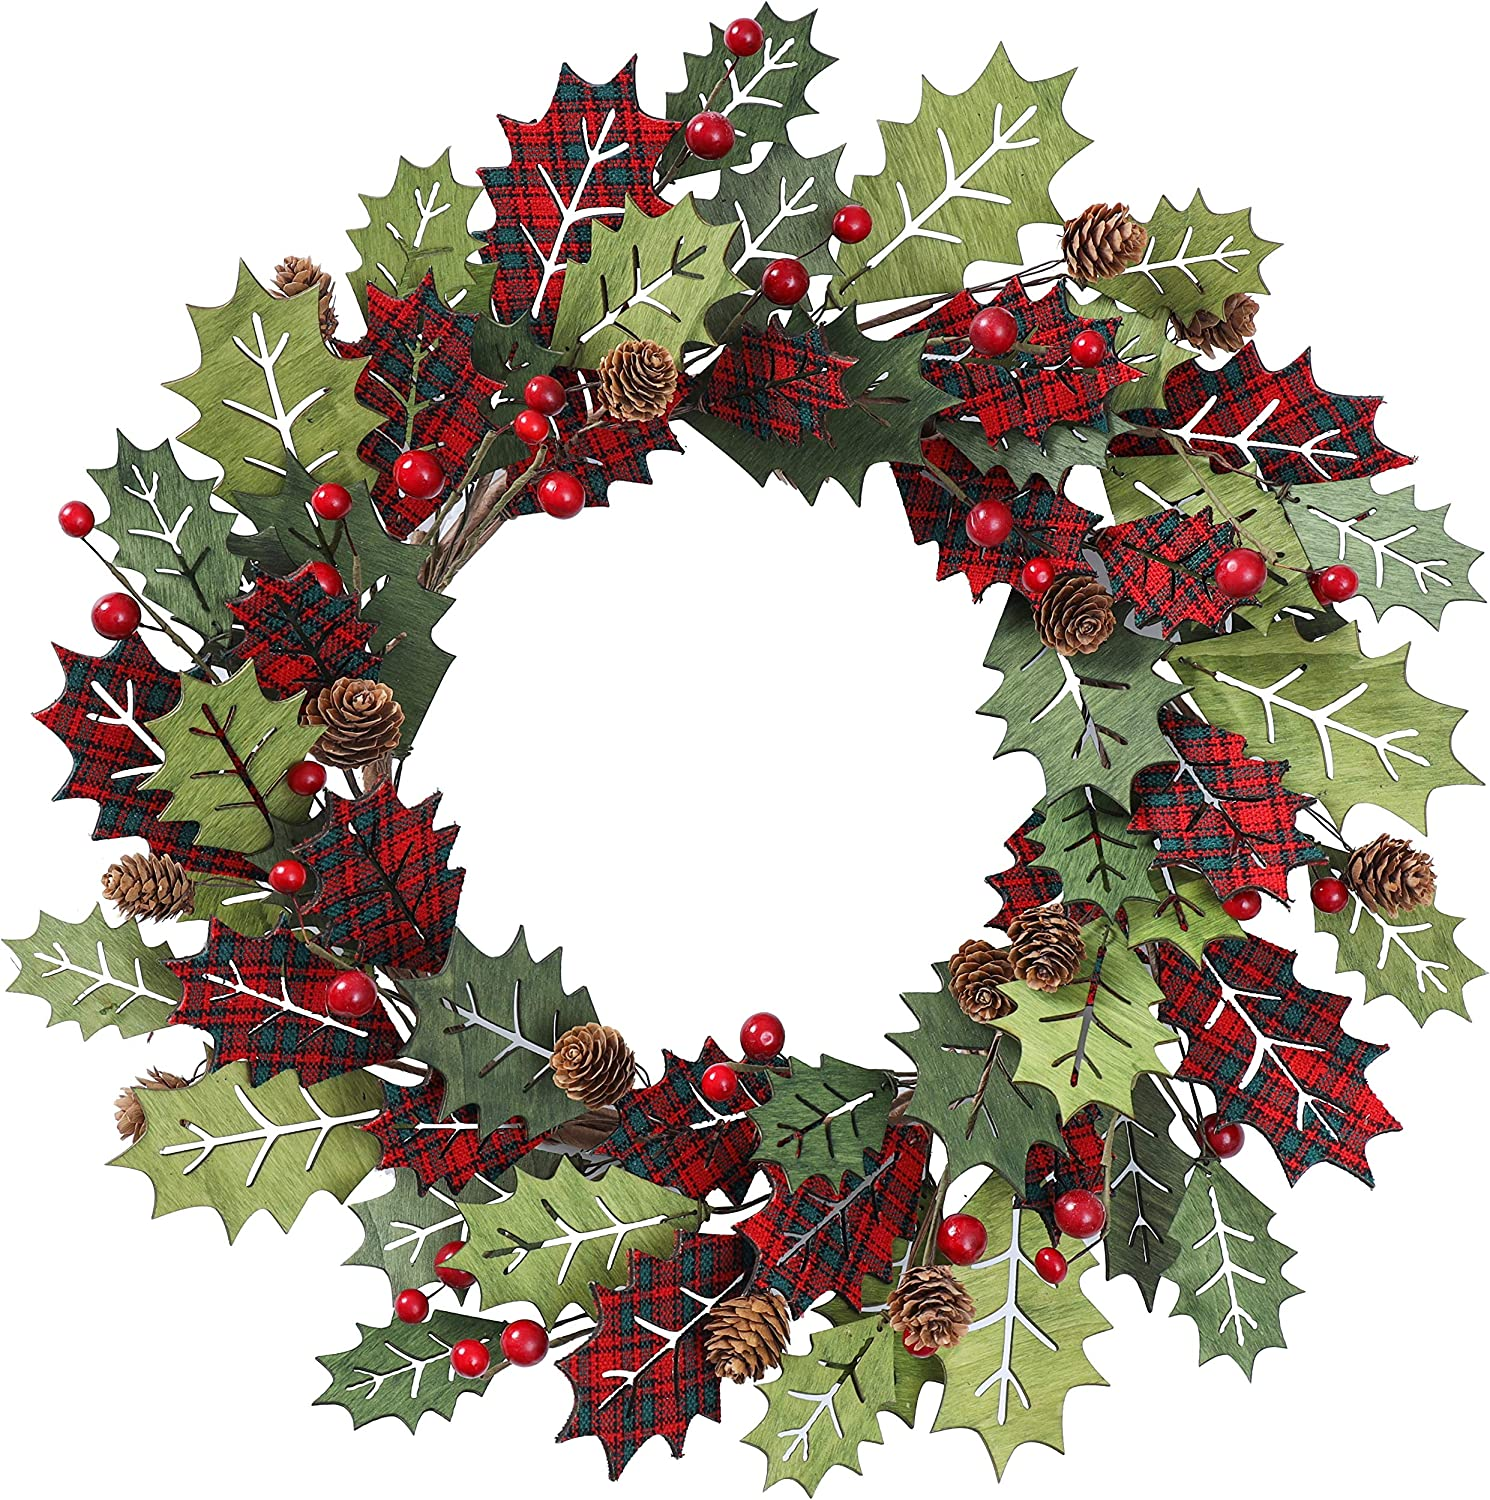 YNYLCHMX Christmas Wreath for Front Door, Artificial Door Wreath Flushed with Holly Leaves, Berry, Pine Cones, Home Decor for Indoor, Wall, Fireplace, Decoration, 20 Inch